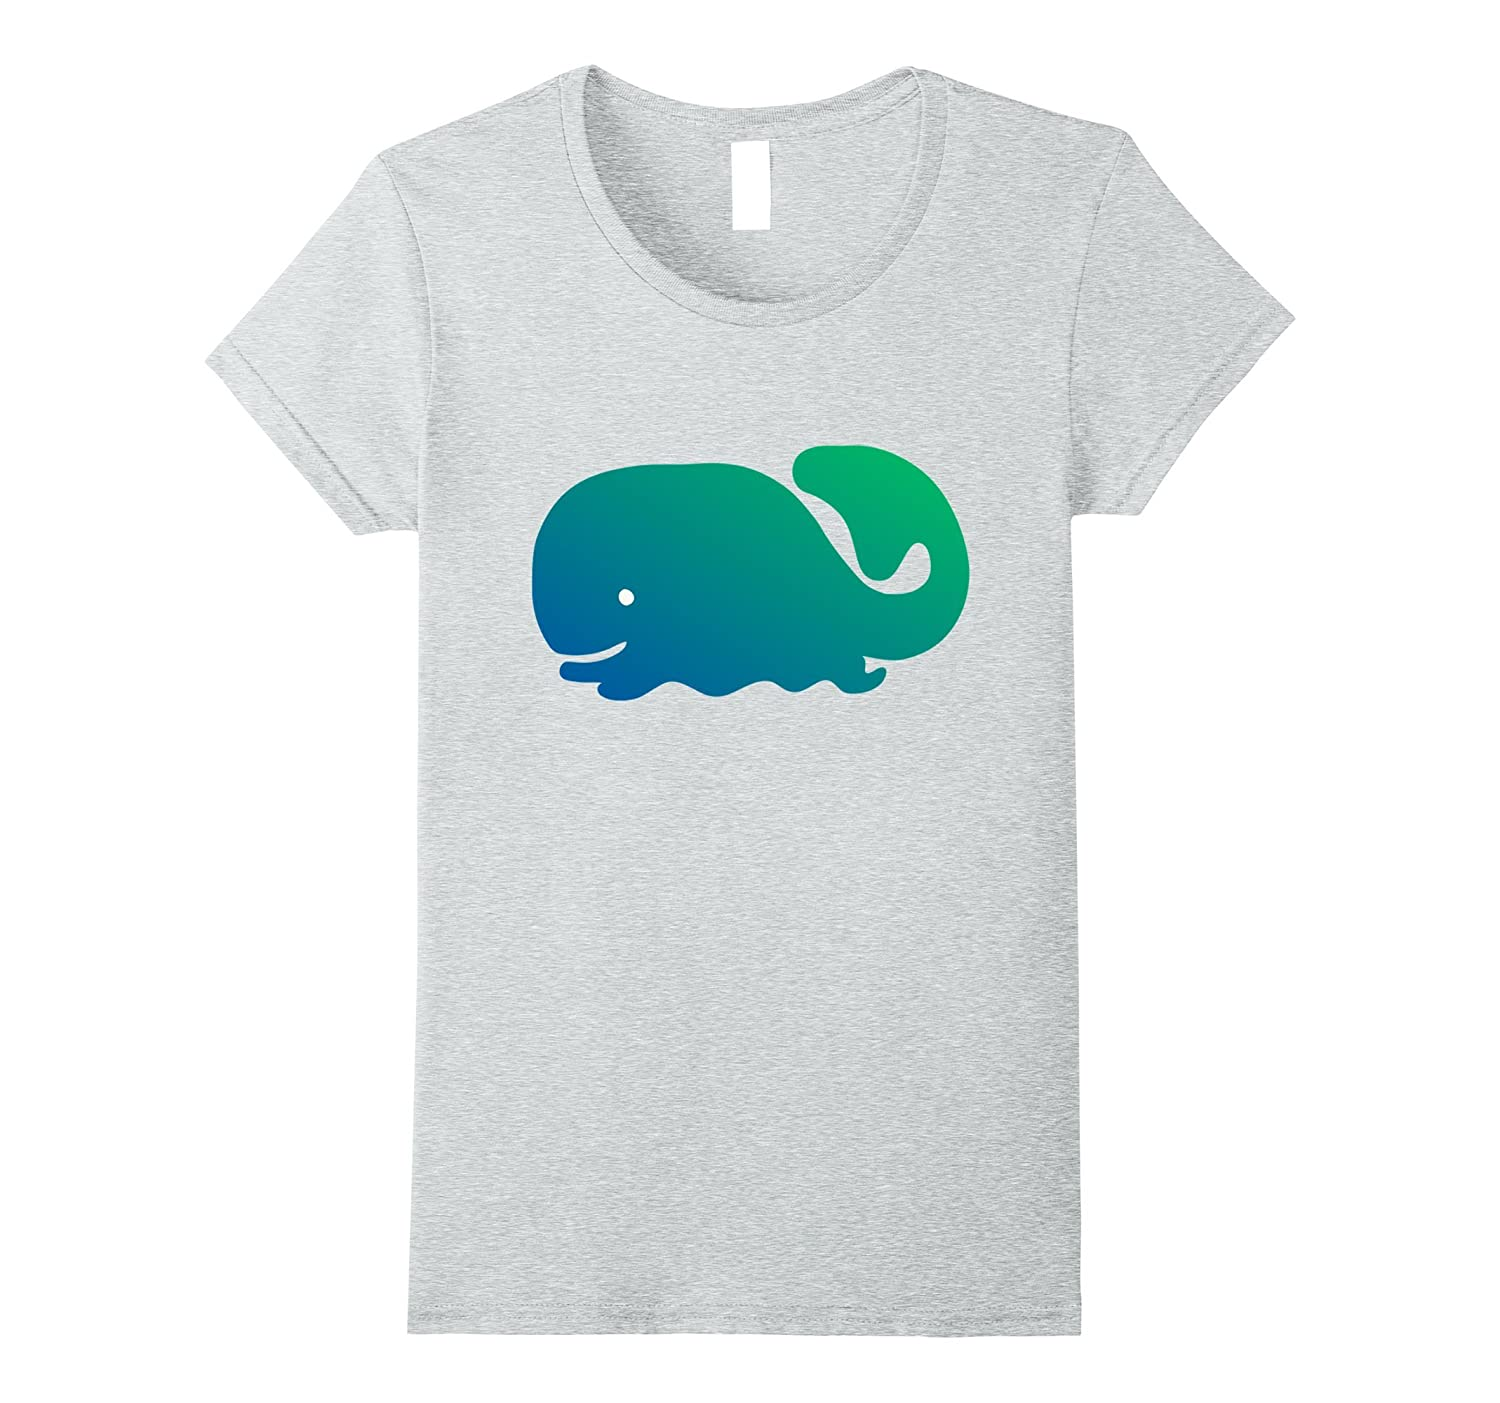 Big Whale T Shirt- Whale Lives Matter Classic Fit T Shirt